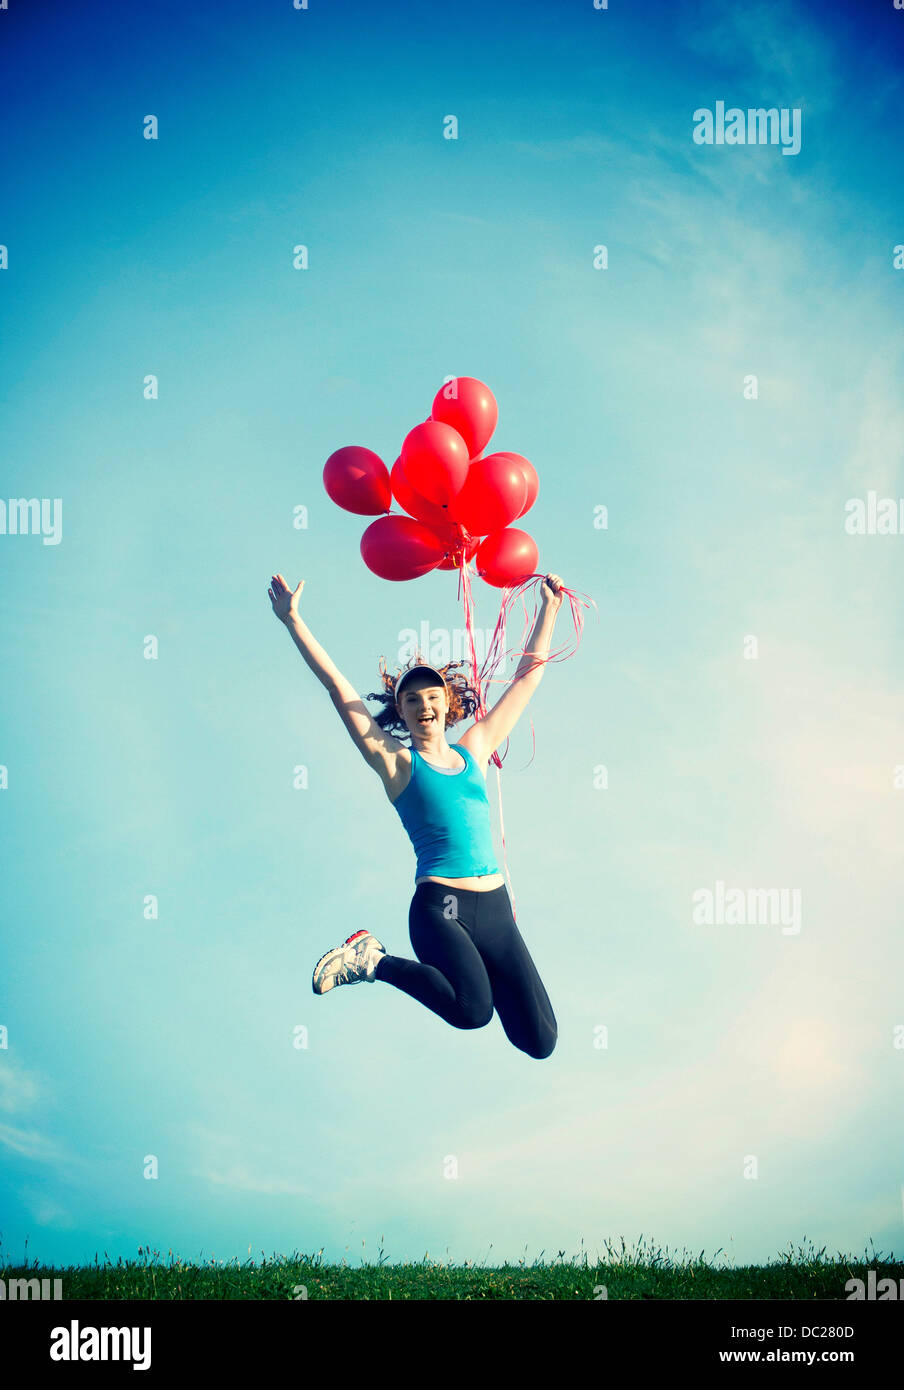 Teenage girl jumping in mid air holding red balloons Photo Stock